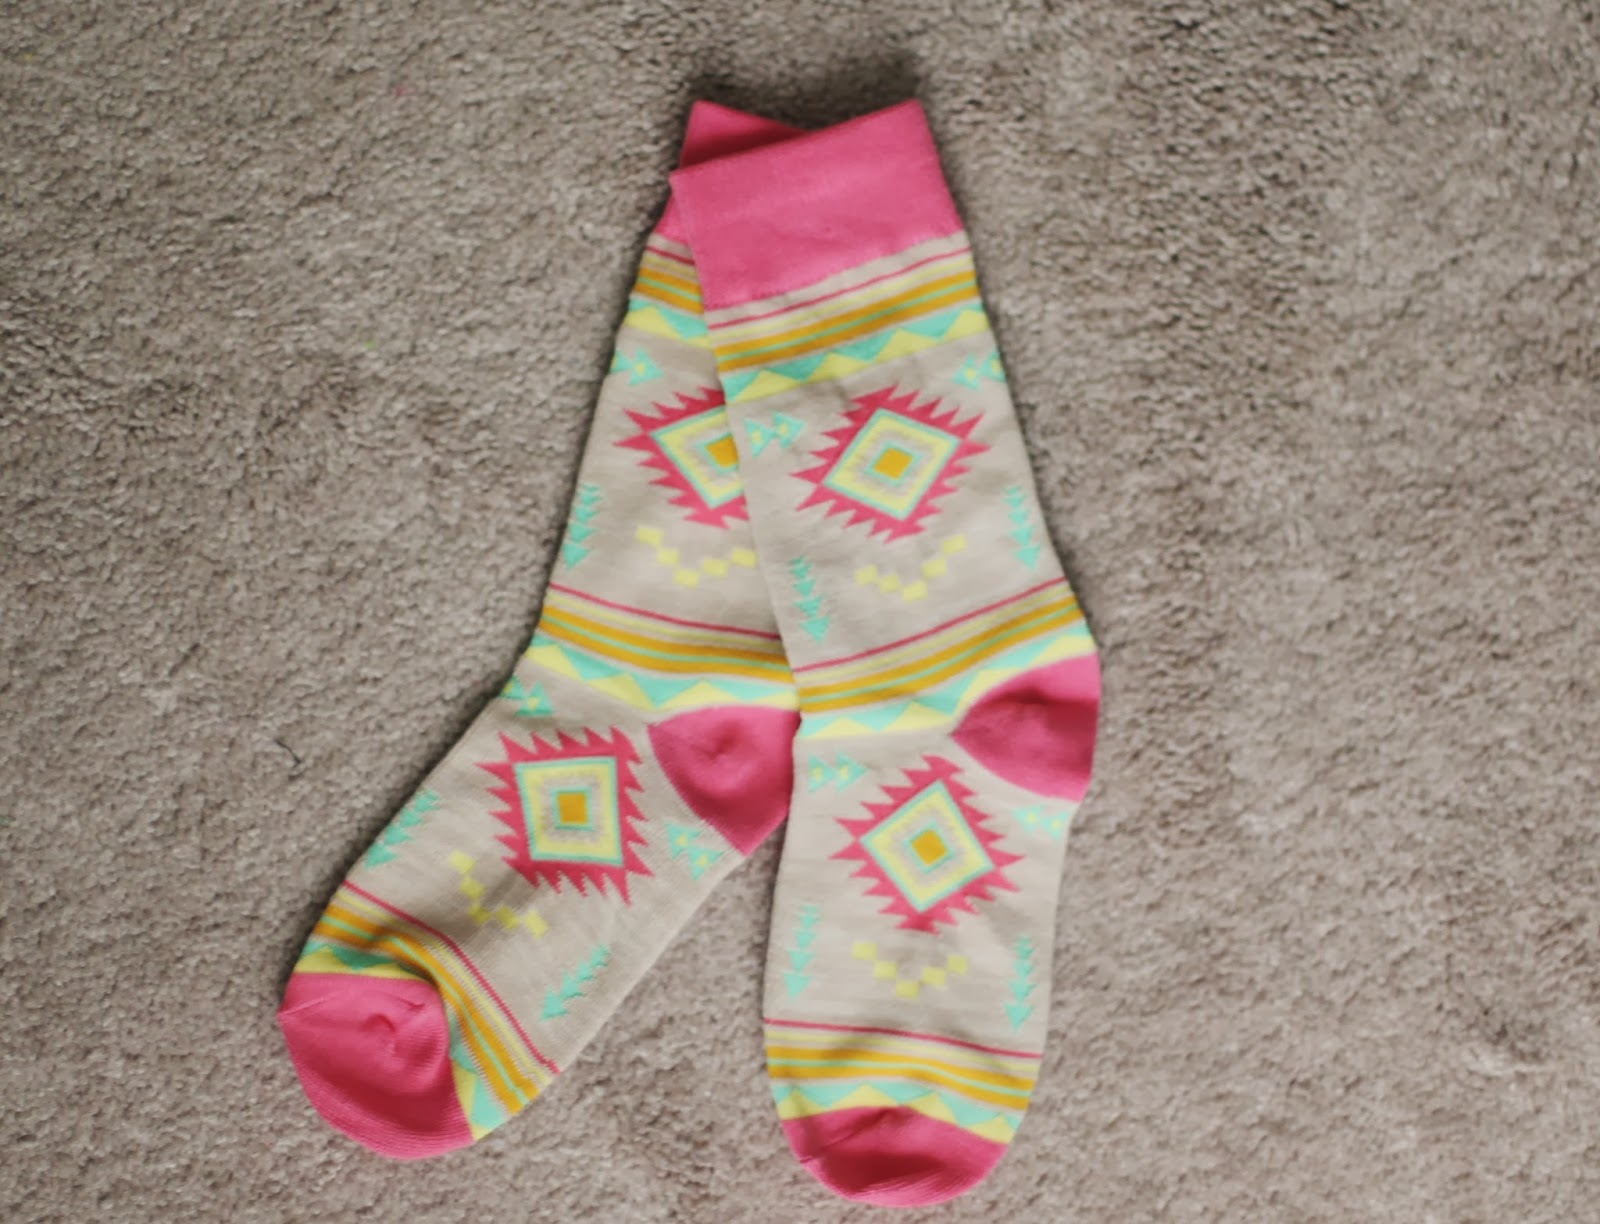 f36c6e399c Socks. Weird or not? I personally love Forever 21's socks because a lot of  the time they come in really cute patterns but lately I have noticed that  as they ...